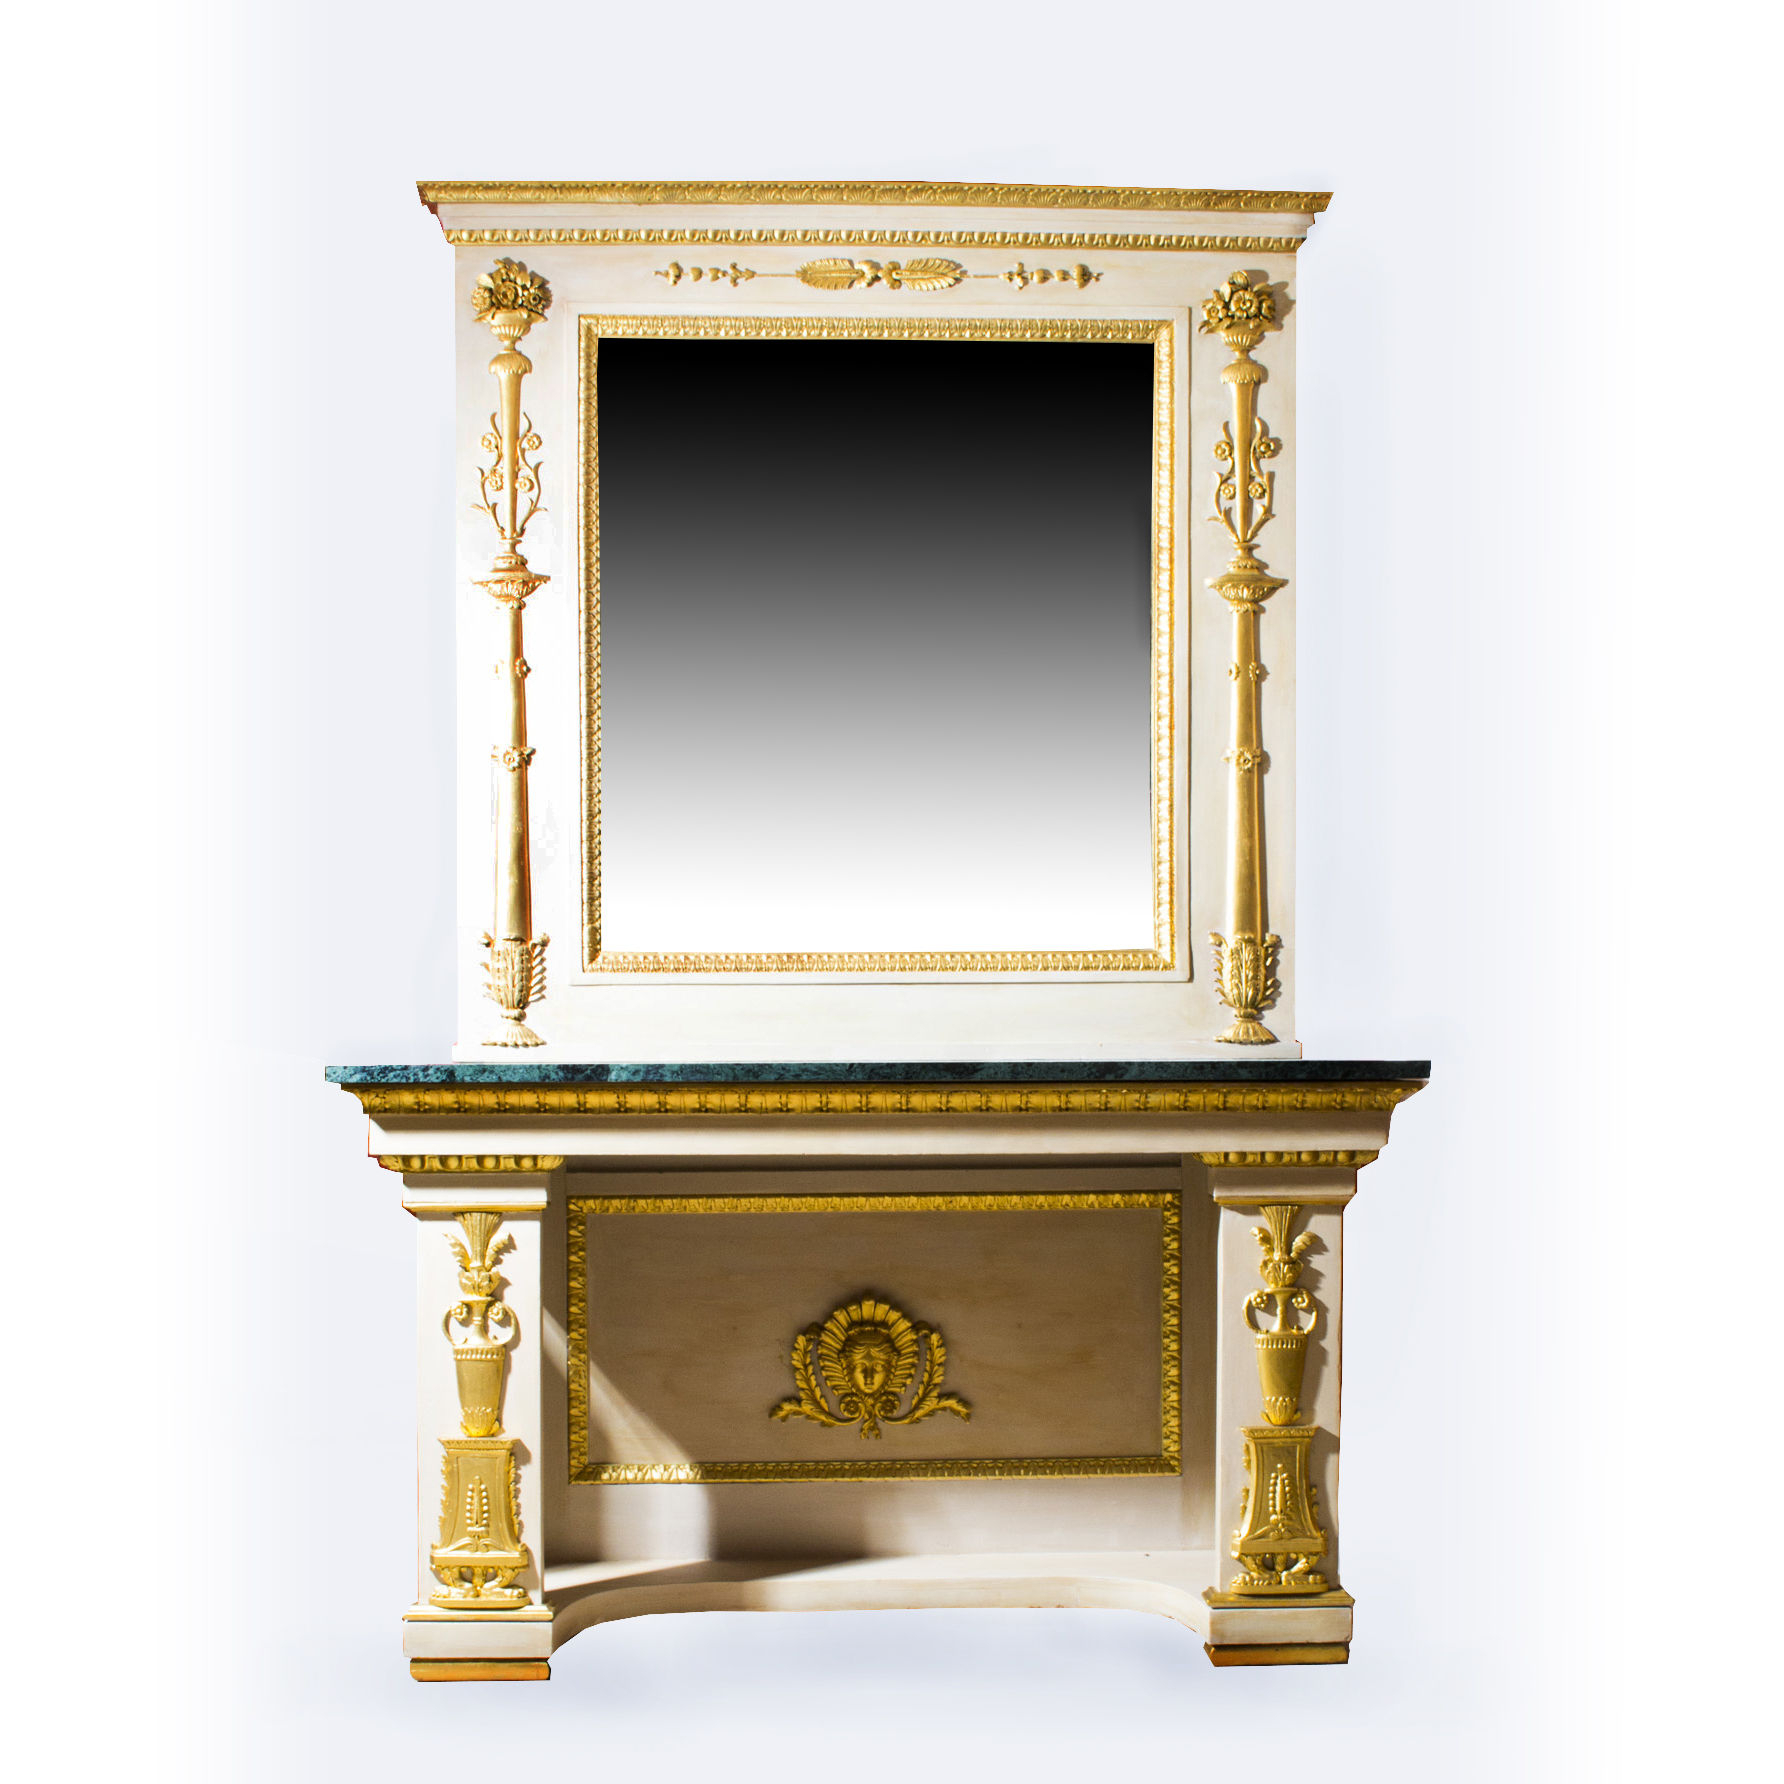 Antique Roman Console Table With Mirror & Marble Top 248 X 168 Cm (C Throughout Roman Metal Top Console Tables (Gallery 11 of 20)